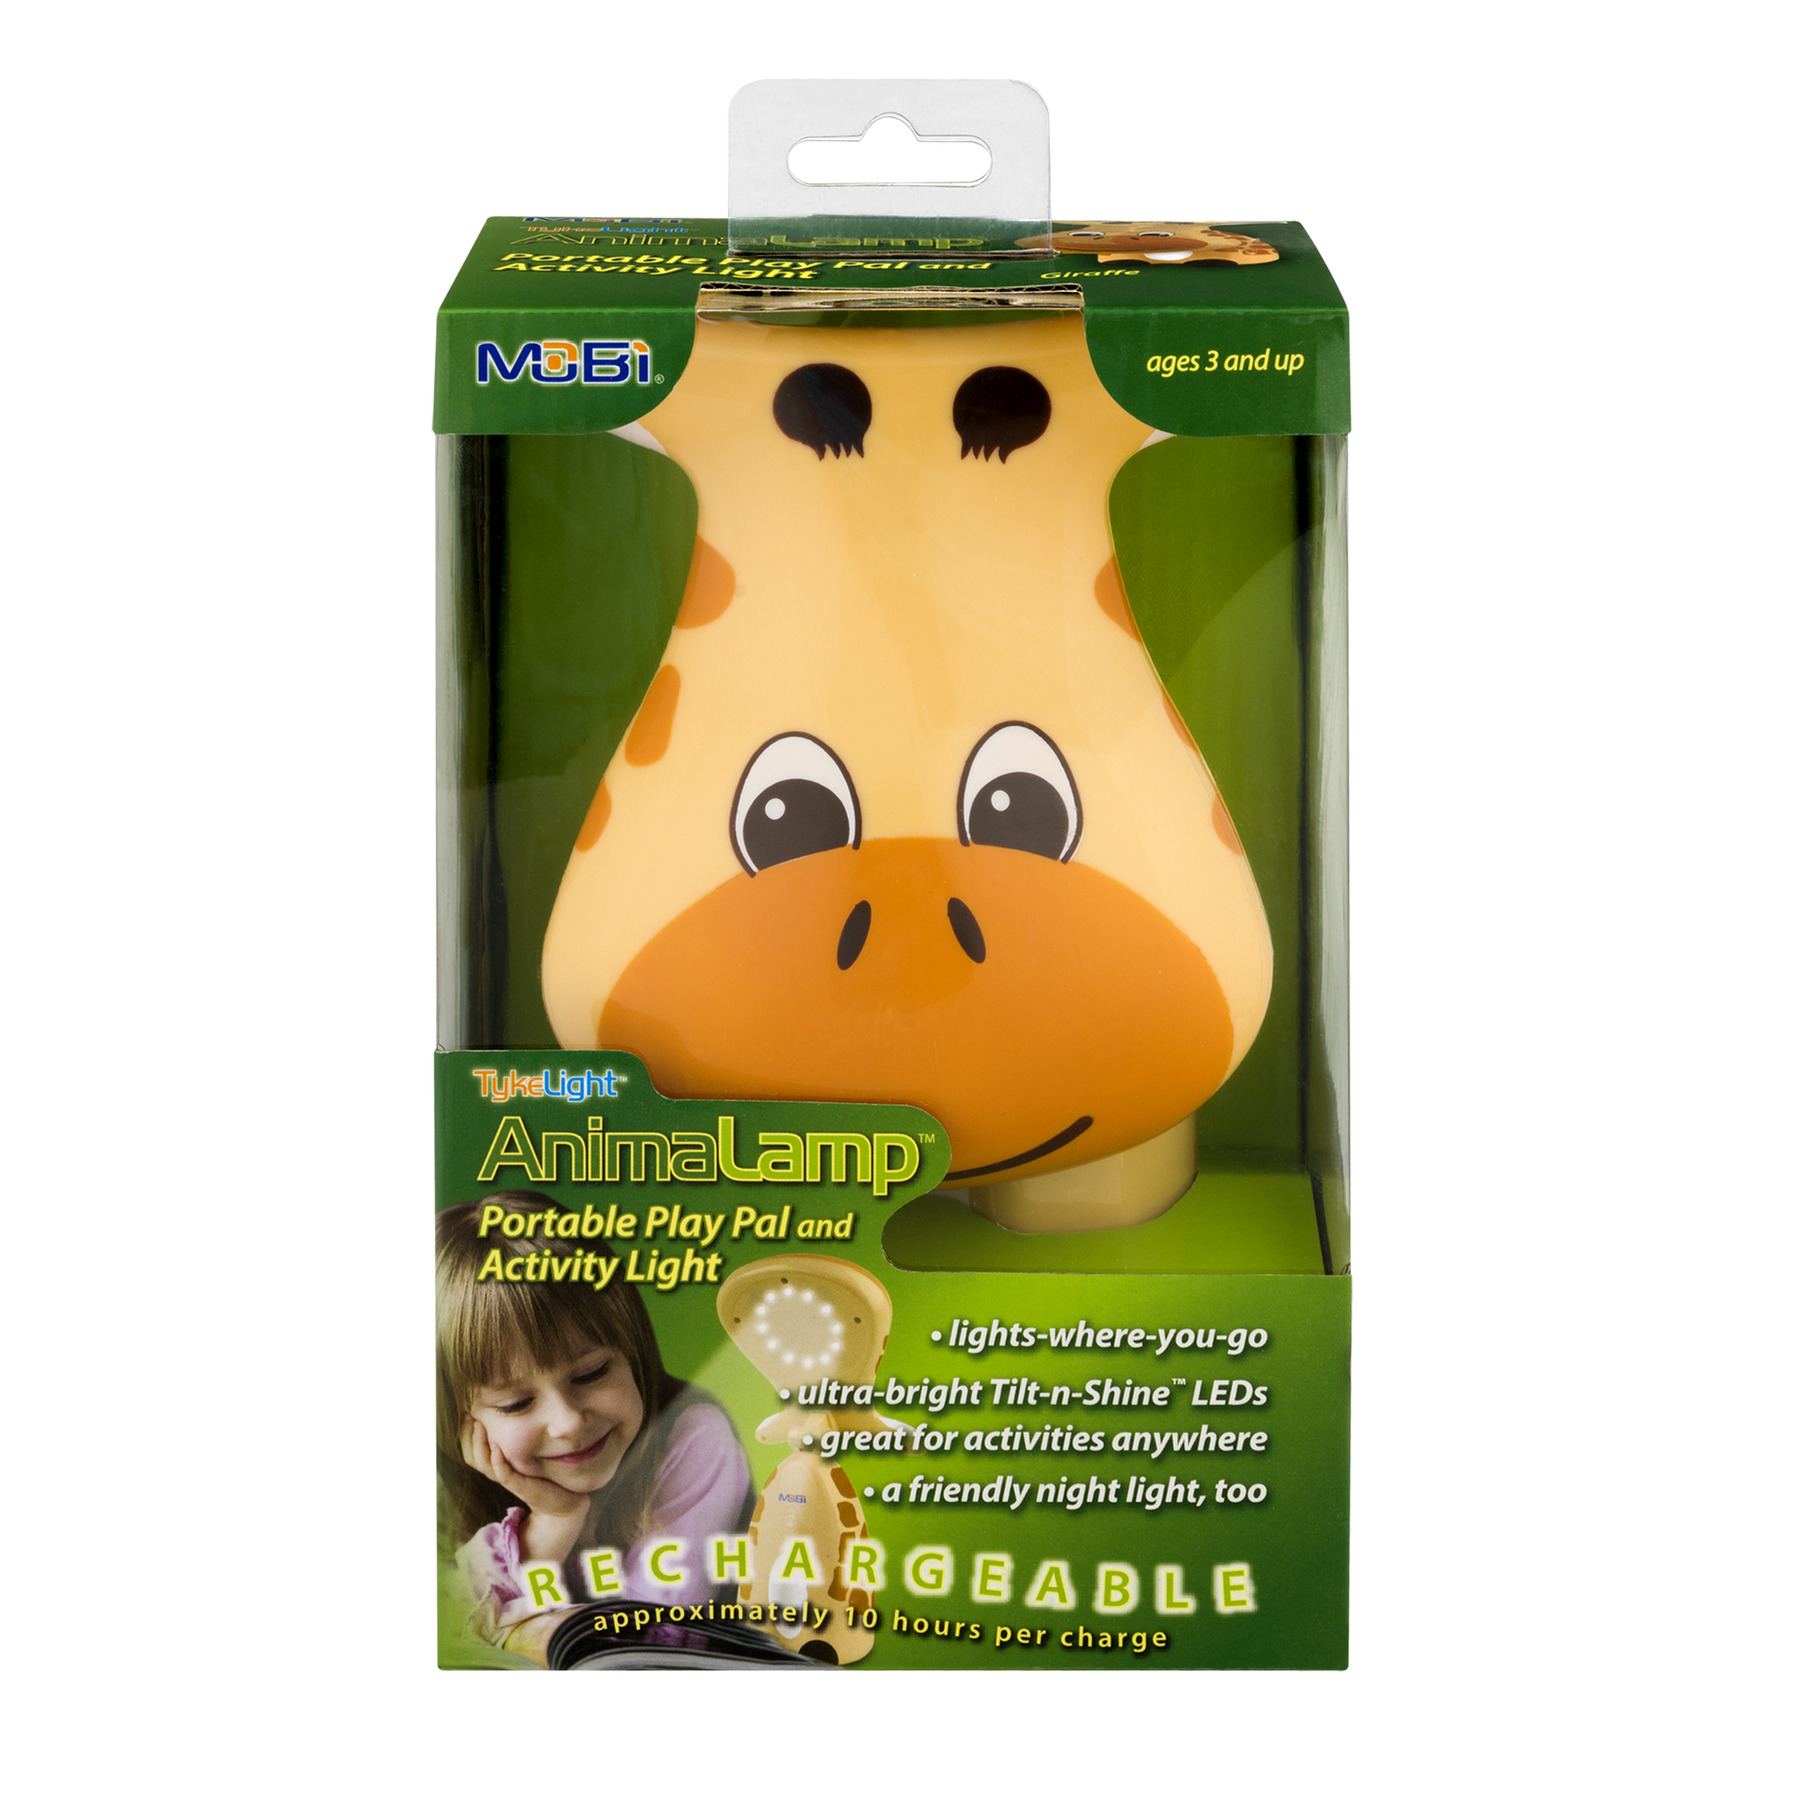 Tyke Light Portable Play Pal And Activity Light Giraffe, 1.0 CT